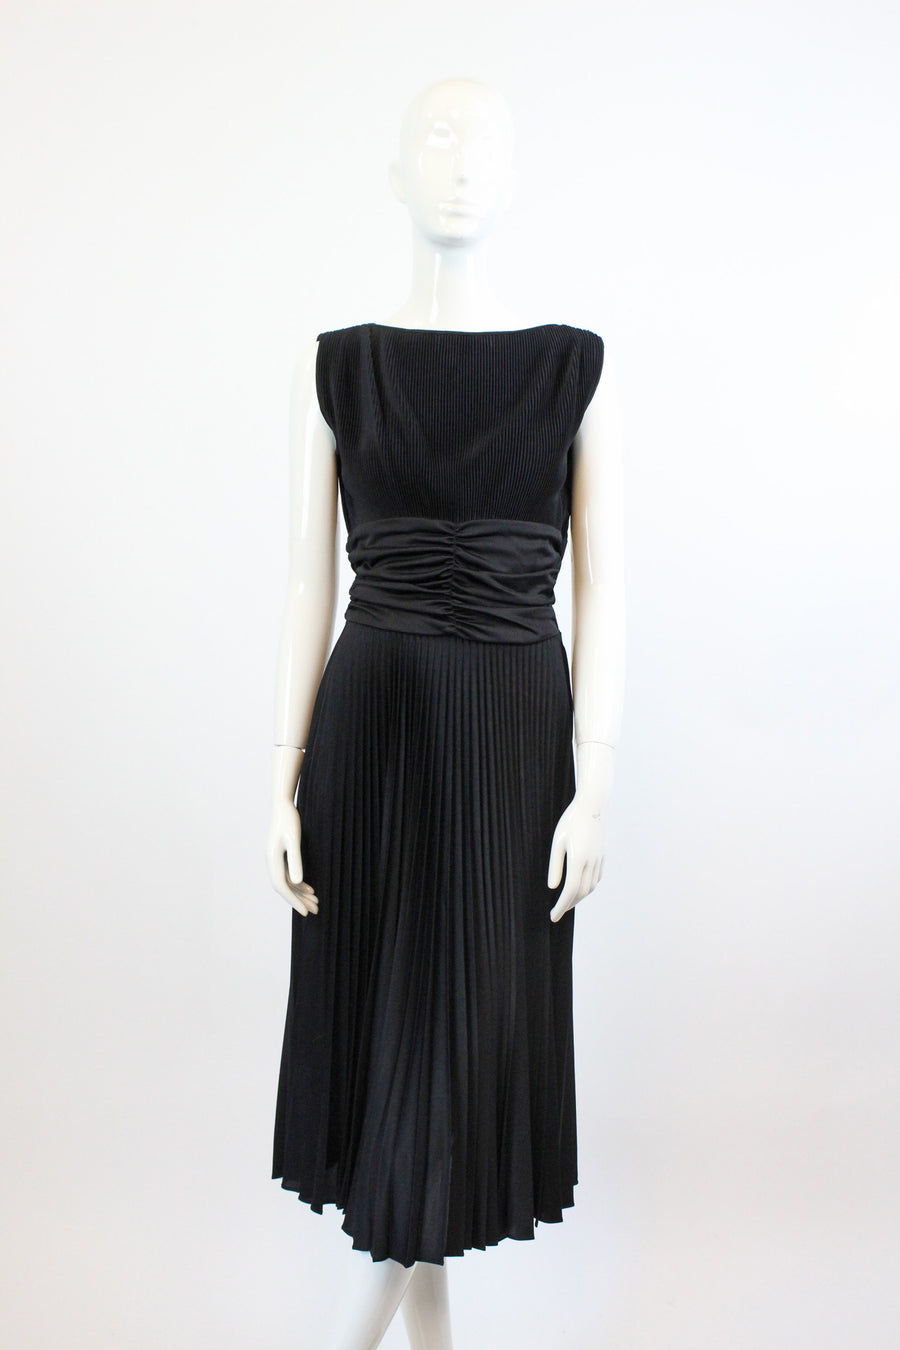 1950s Koret pleated dress xs | vintage cummerbund waist full skirt dress